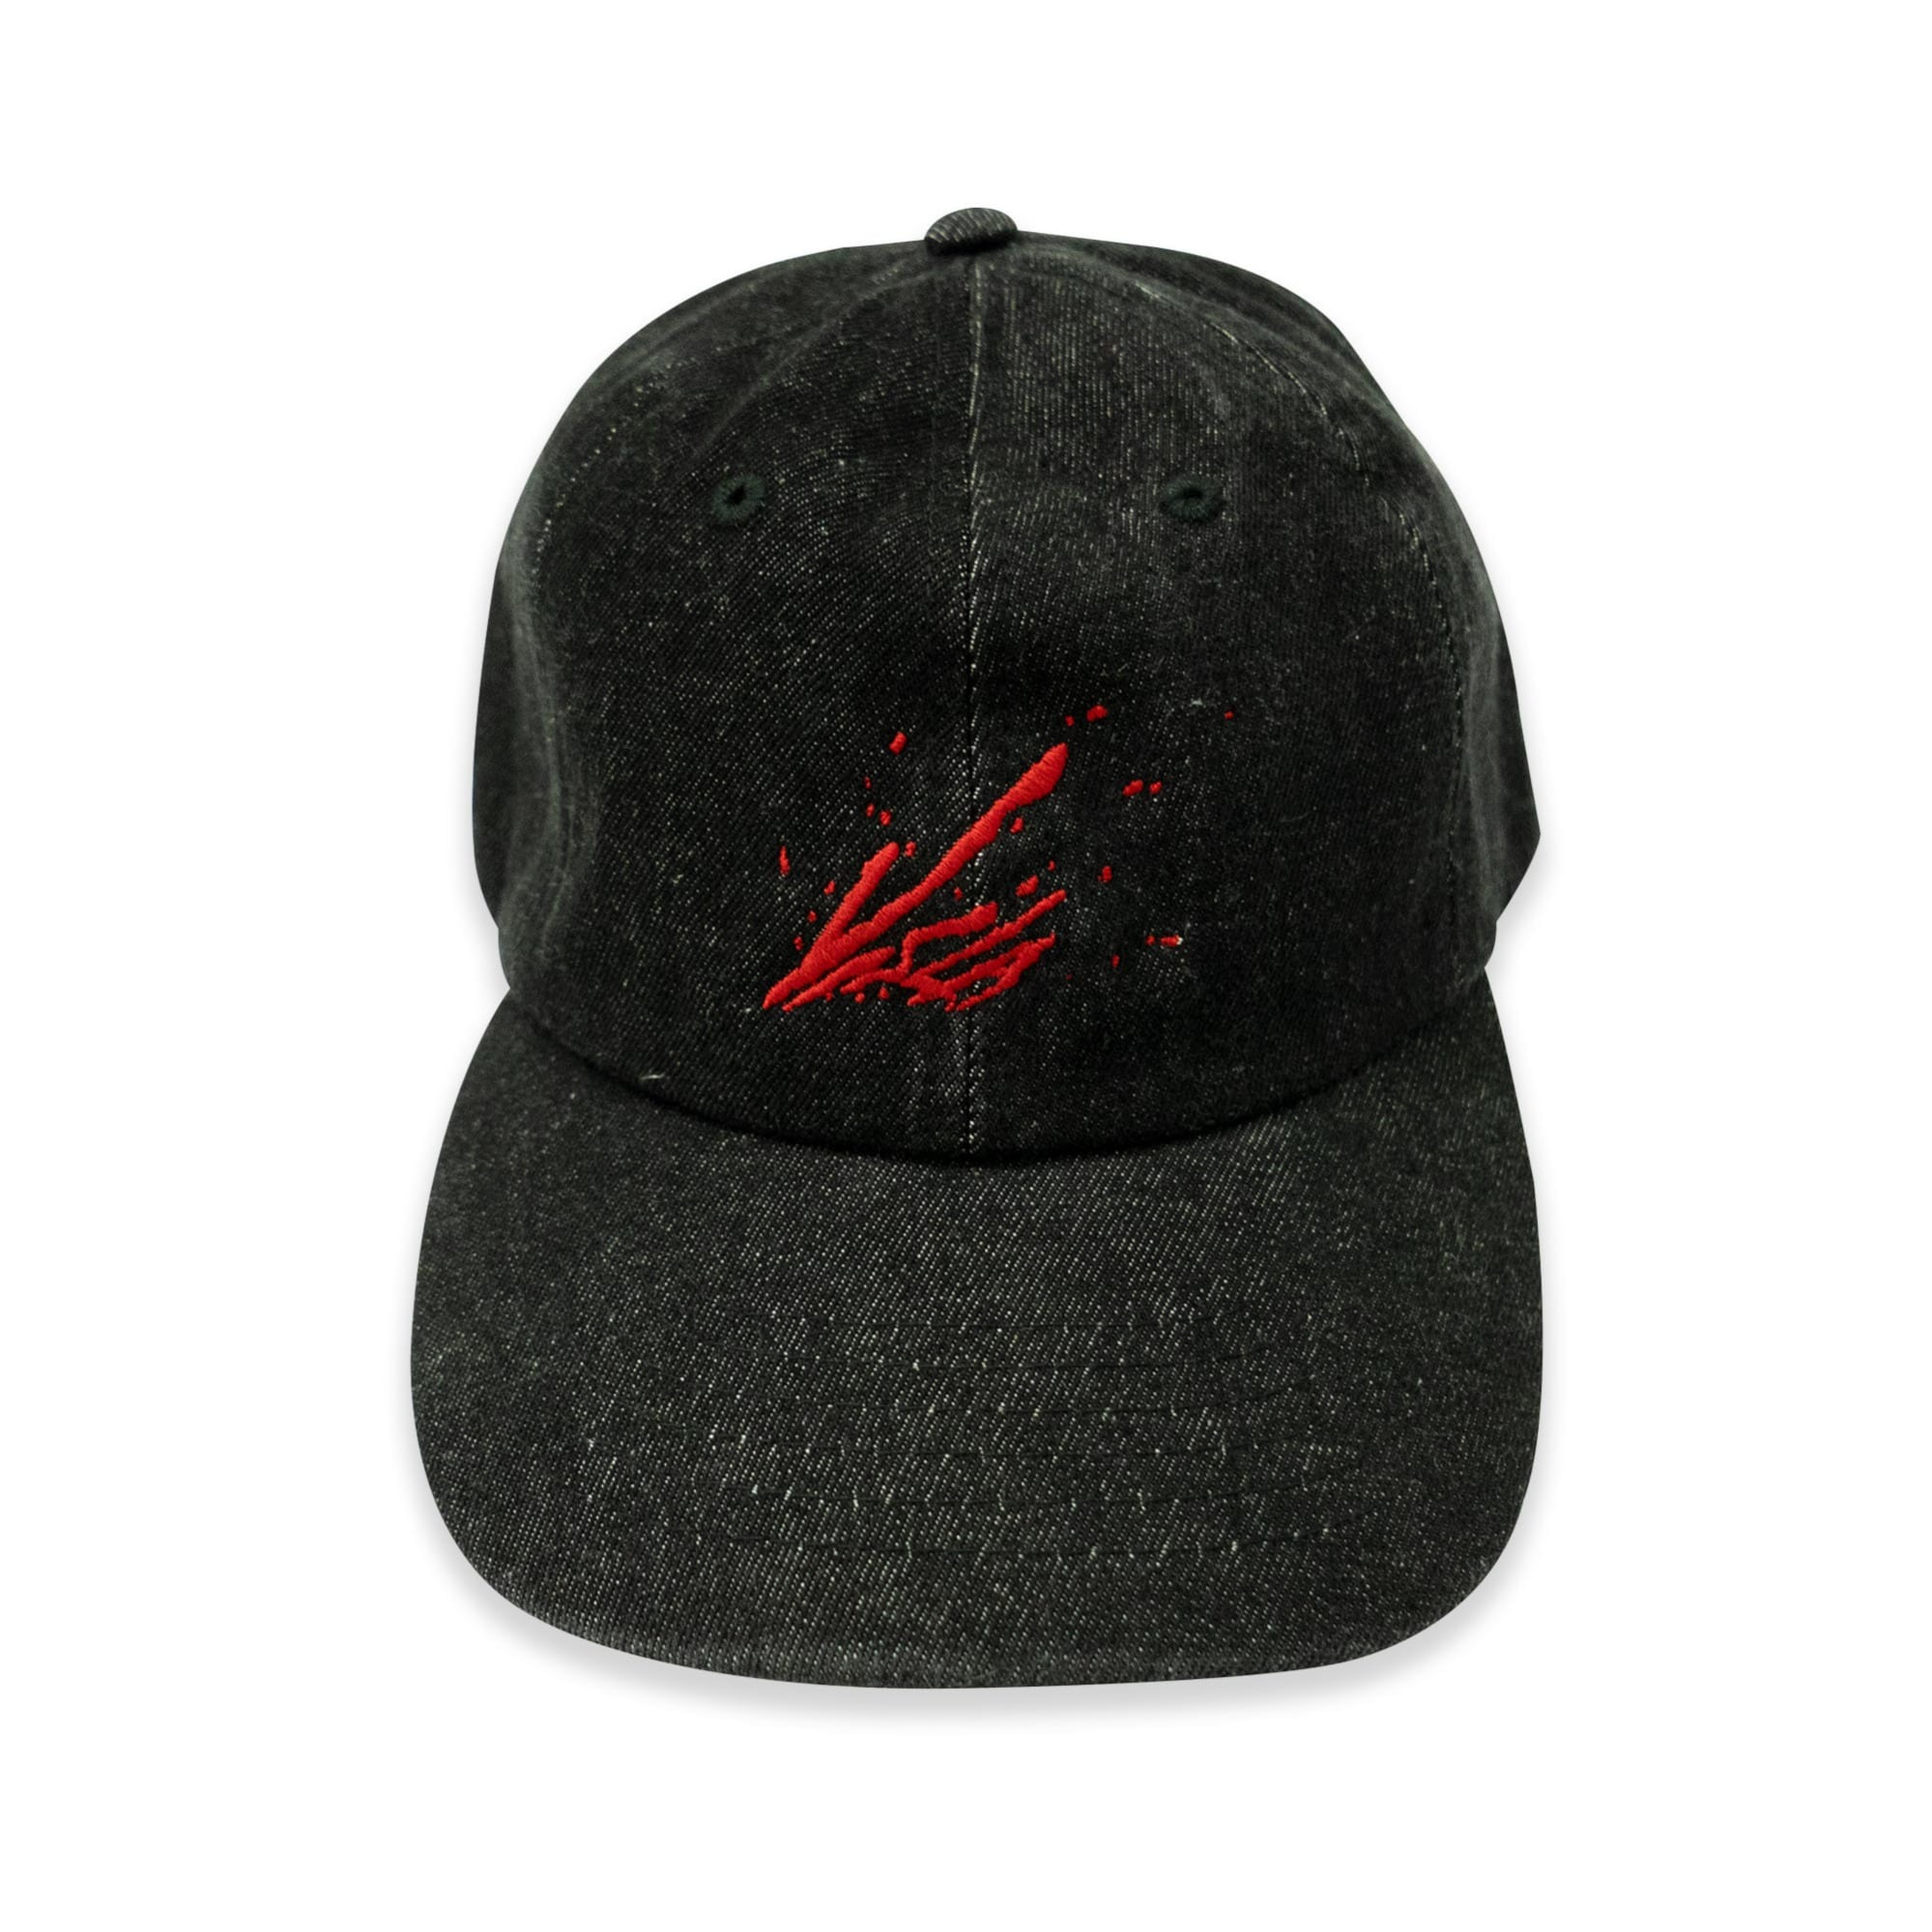 DEATH BLOW BALL CAP - DENIM BLACK